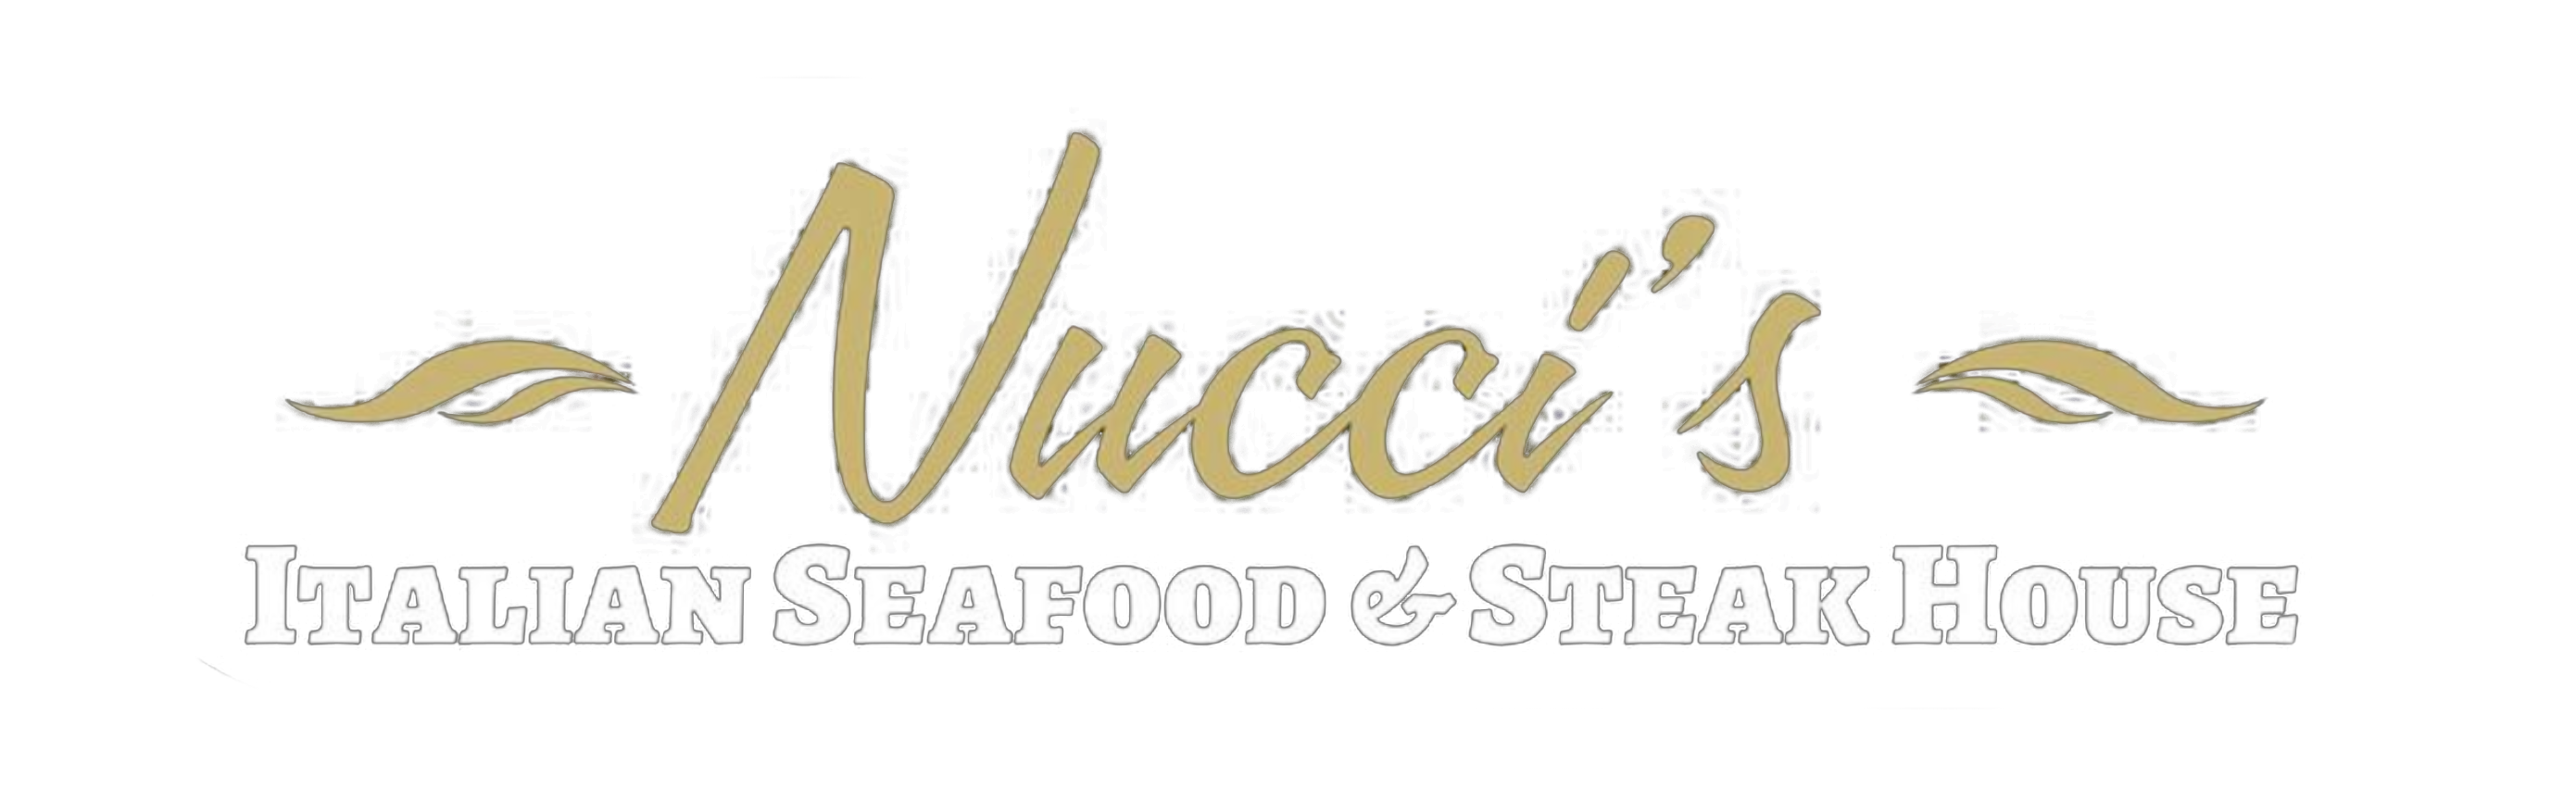 Nucci's Italian Seafood & Steakhouse Home